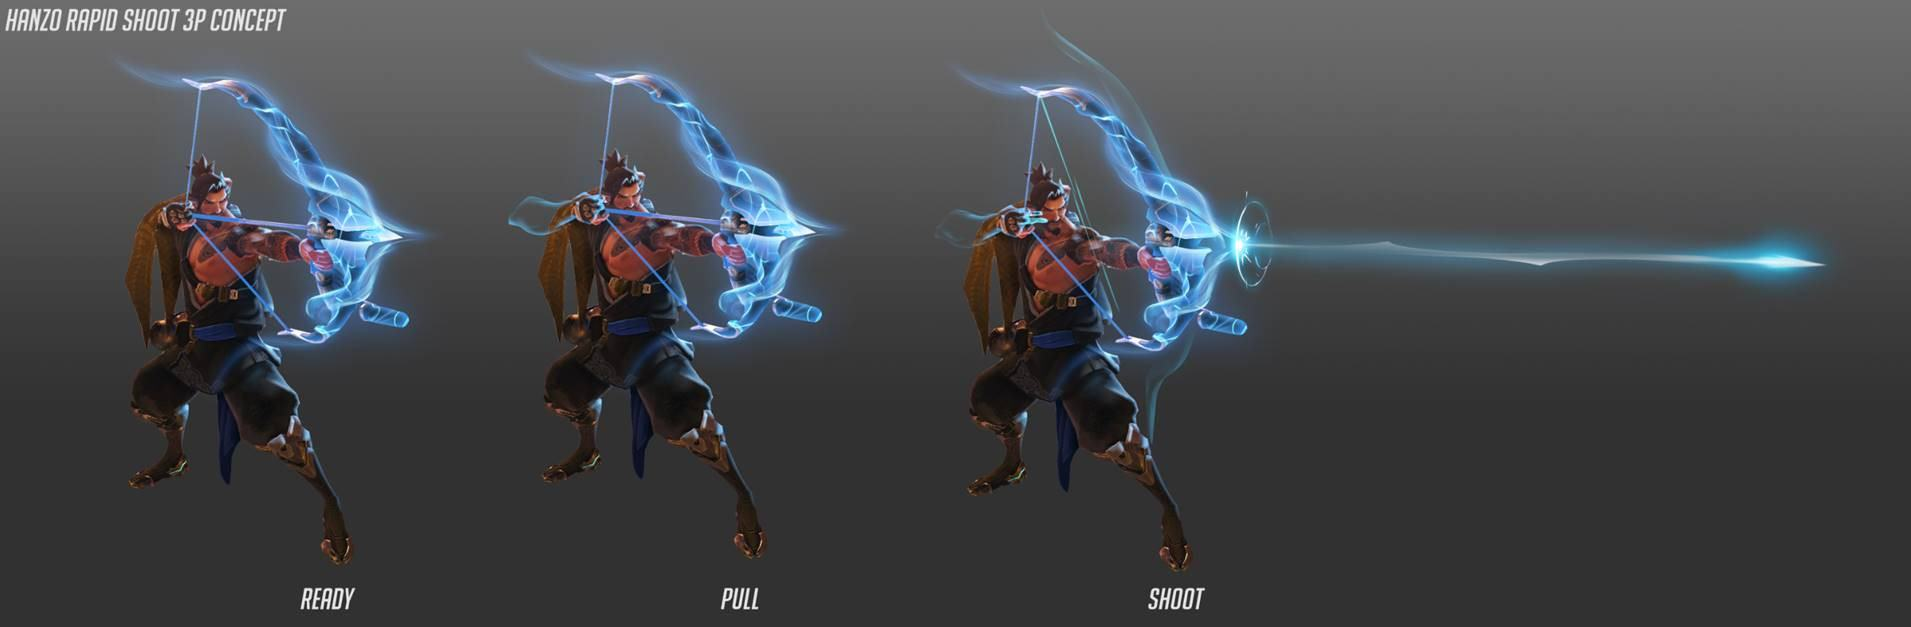 Overwatch Hanzo Sonarpfeil Artwork